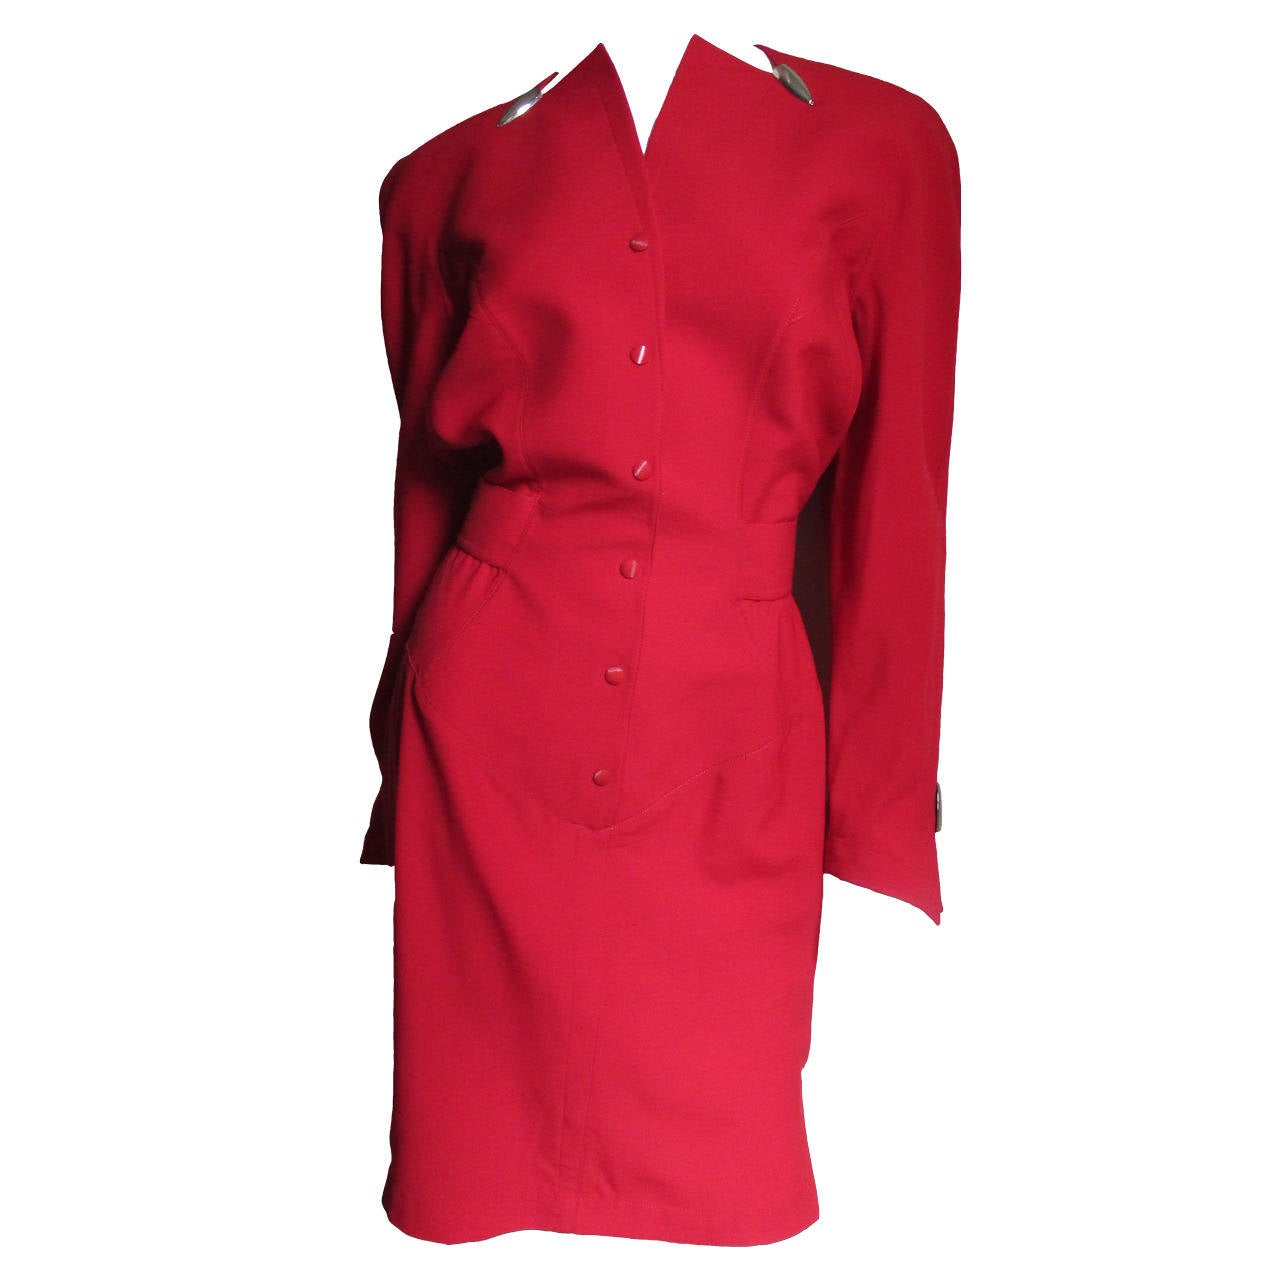 1980s Thierry Mugler Dress With Hardware